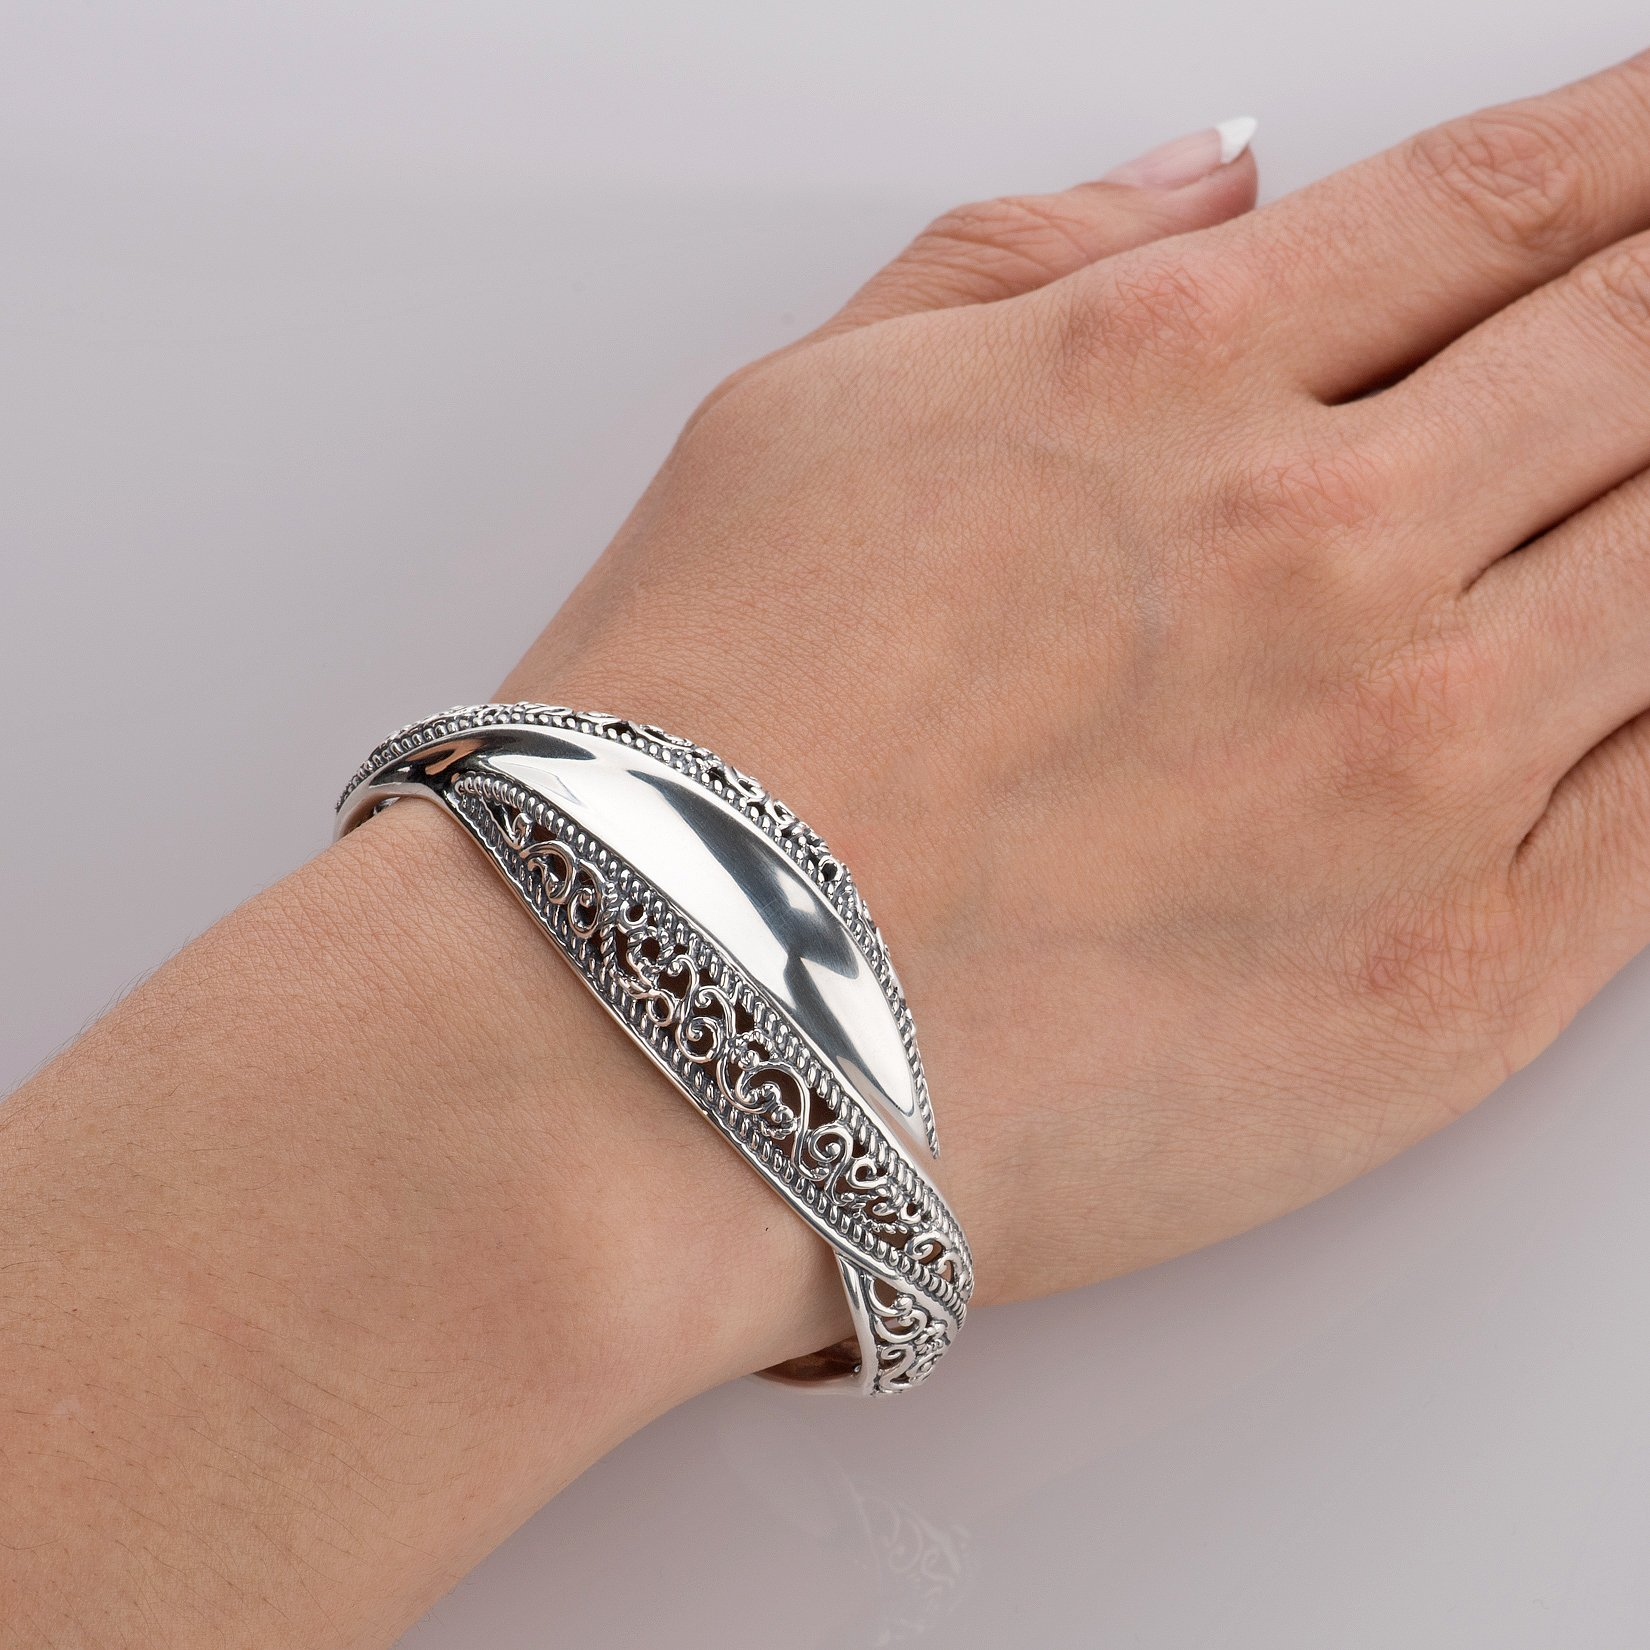 Carolyn Pollack Signature Genuine .925 Sterling Silver Wave Cuff Bracelet by Carolyn Pollack (Image #3)